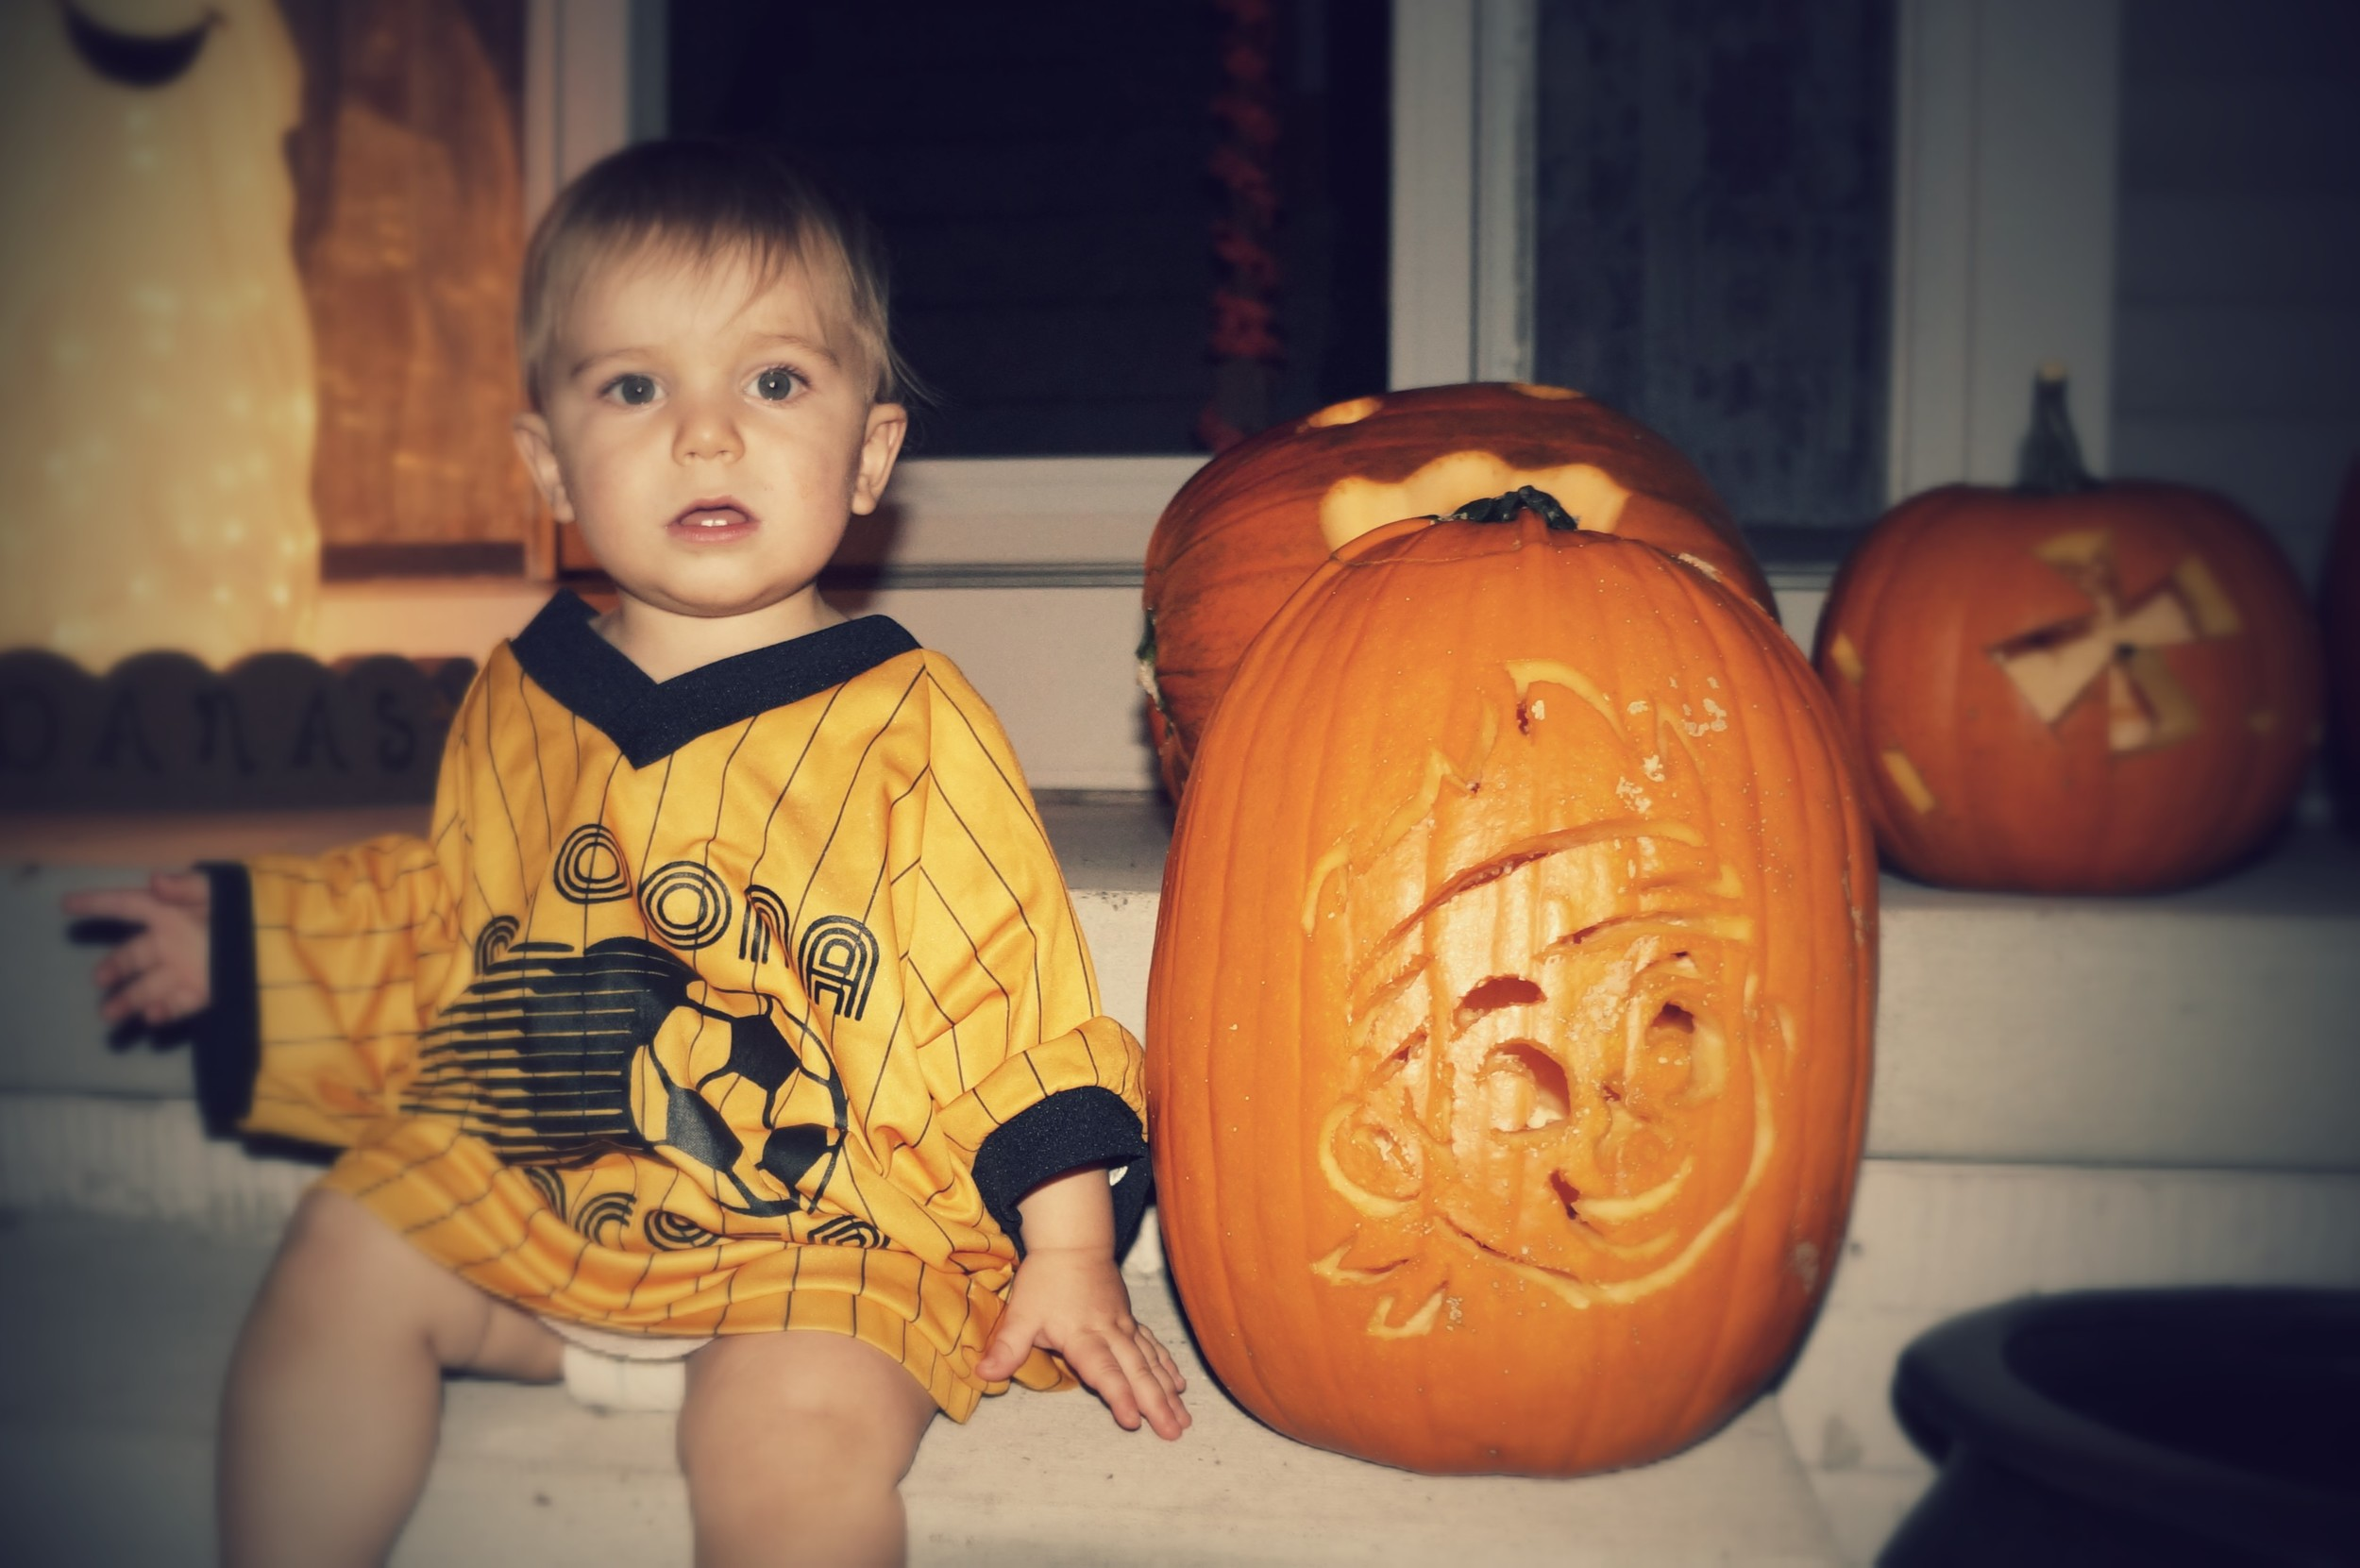 Ryker with his Jake and the Neverland Pirates pumpkin